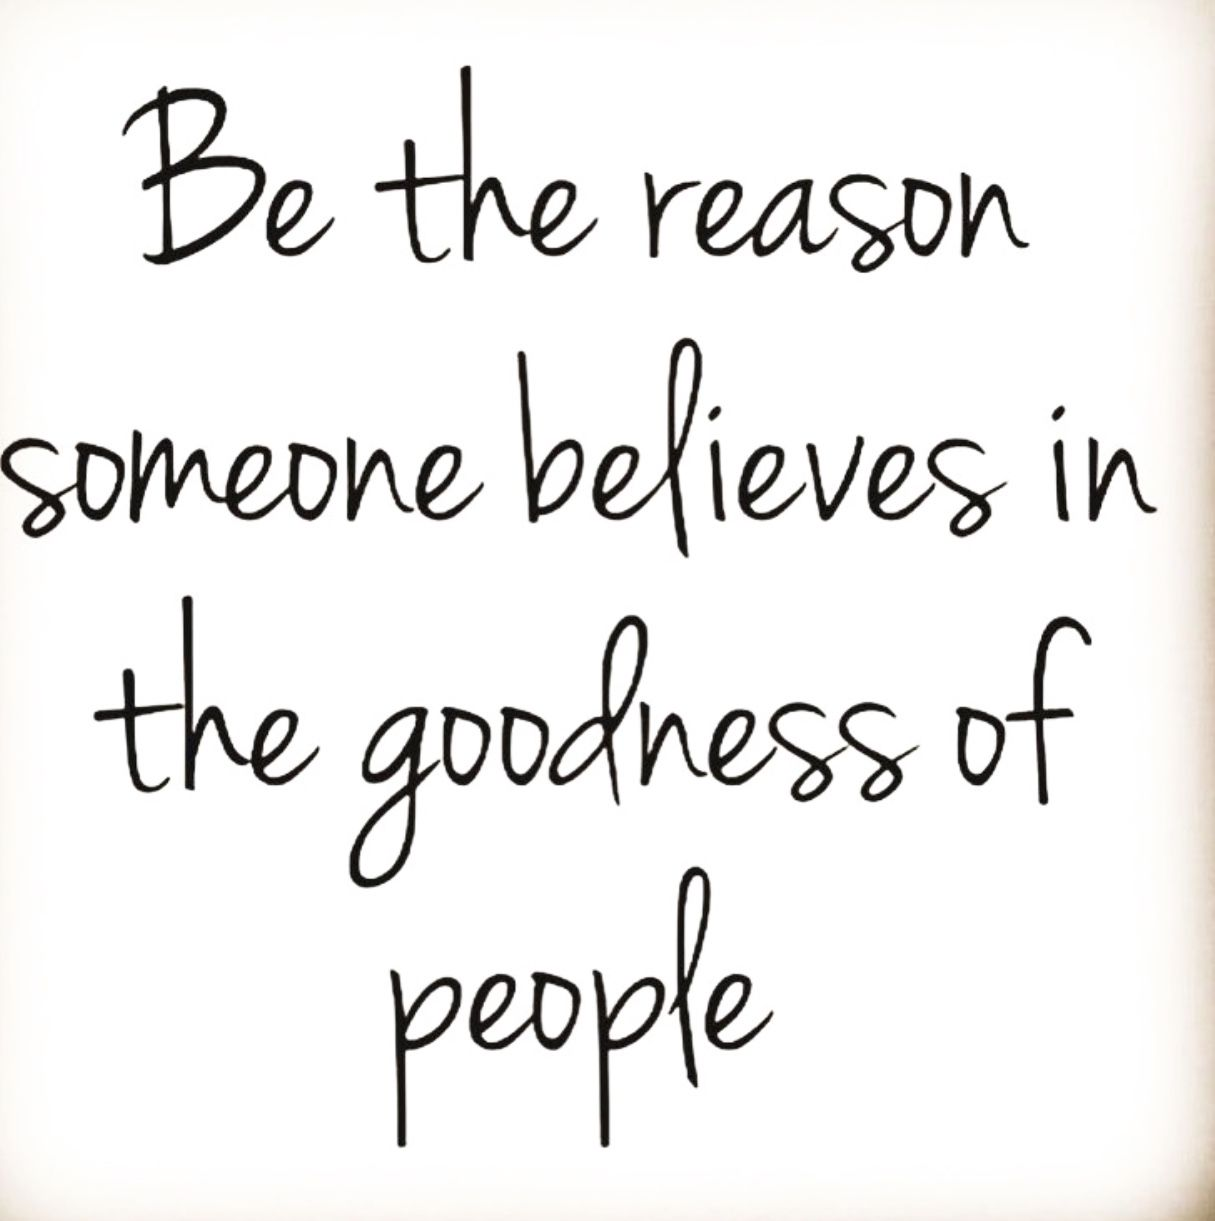 Be The Reason Someone Believes In Goodness Of People From